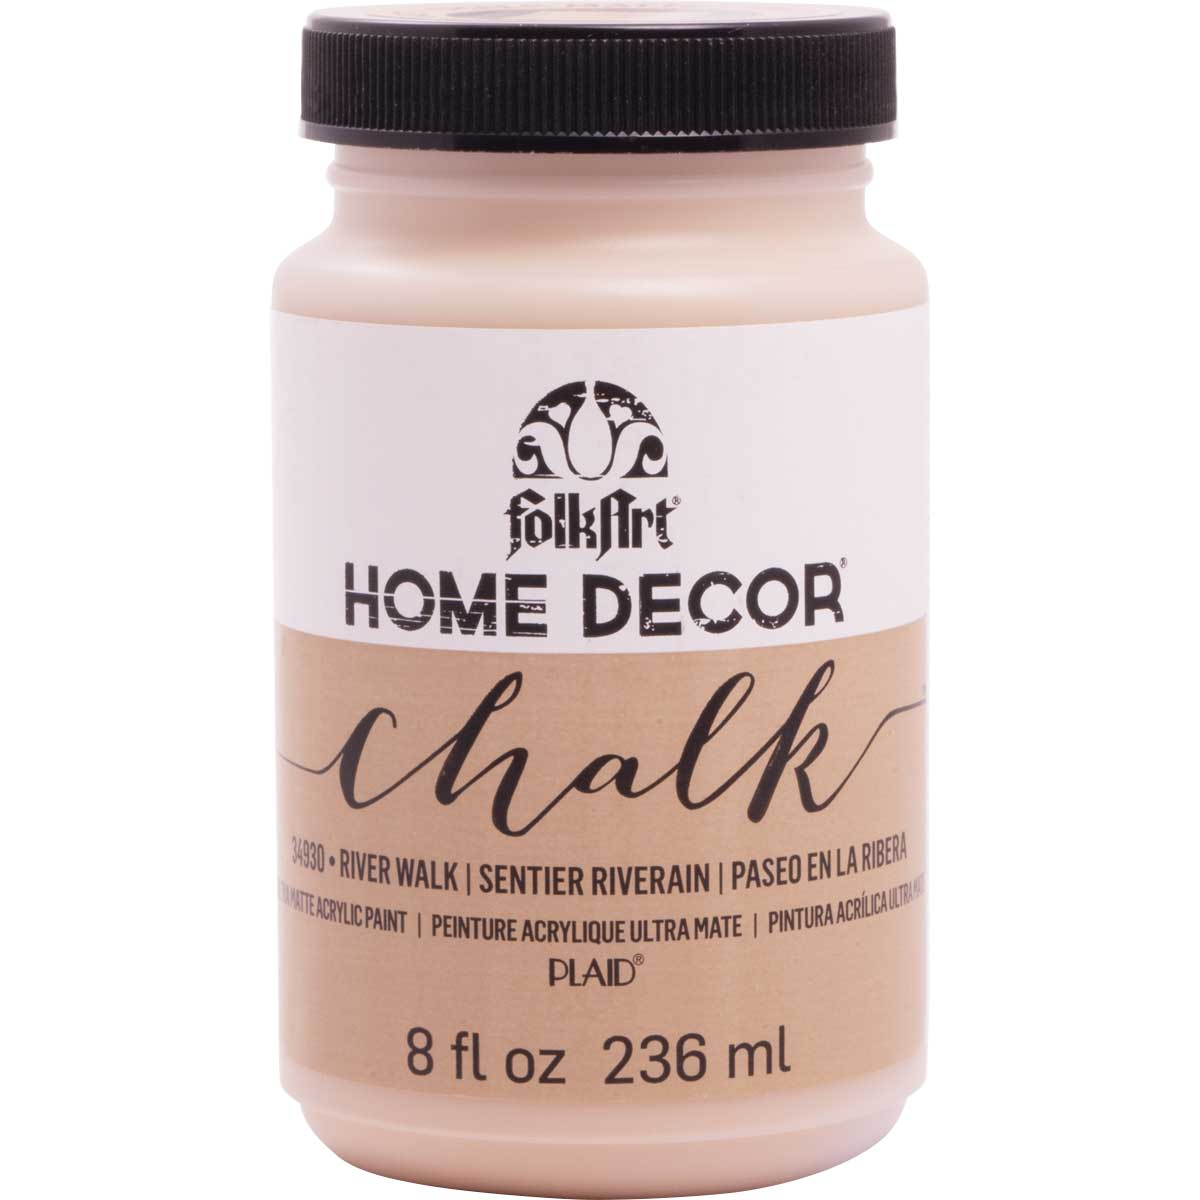 FolkArt ® Home Decor™ Chalk - River Walk, 8 oz.